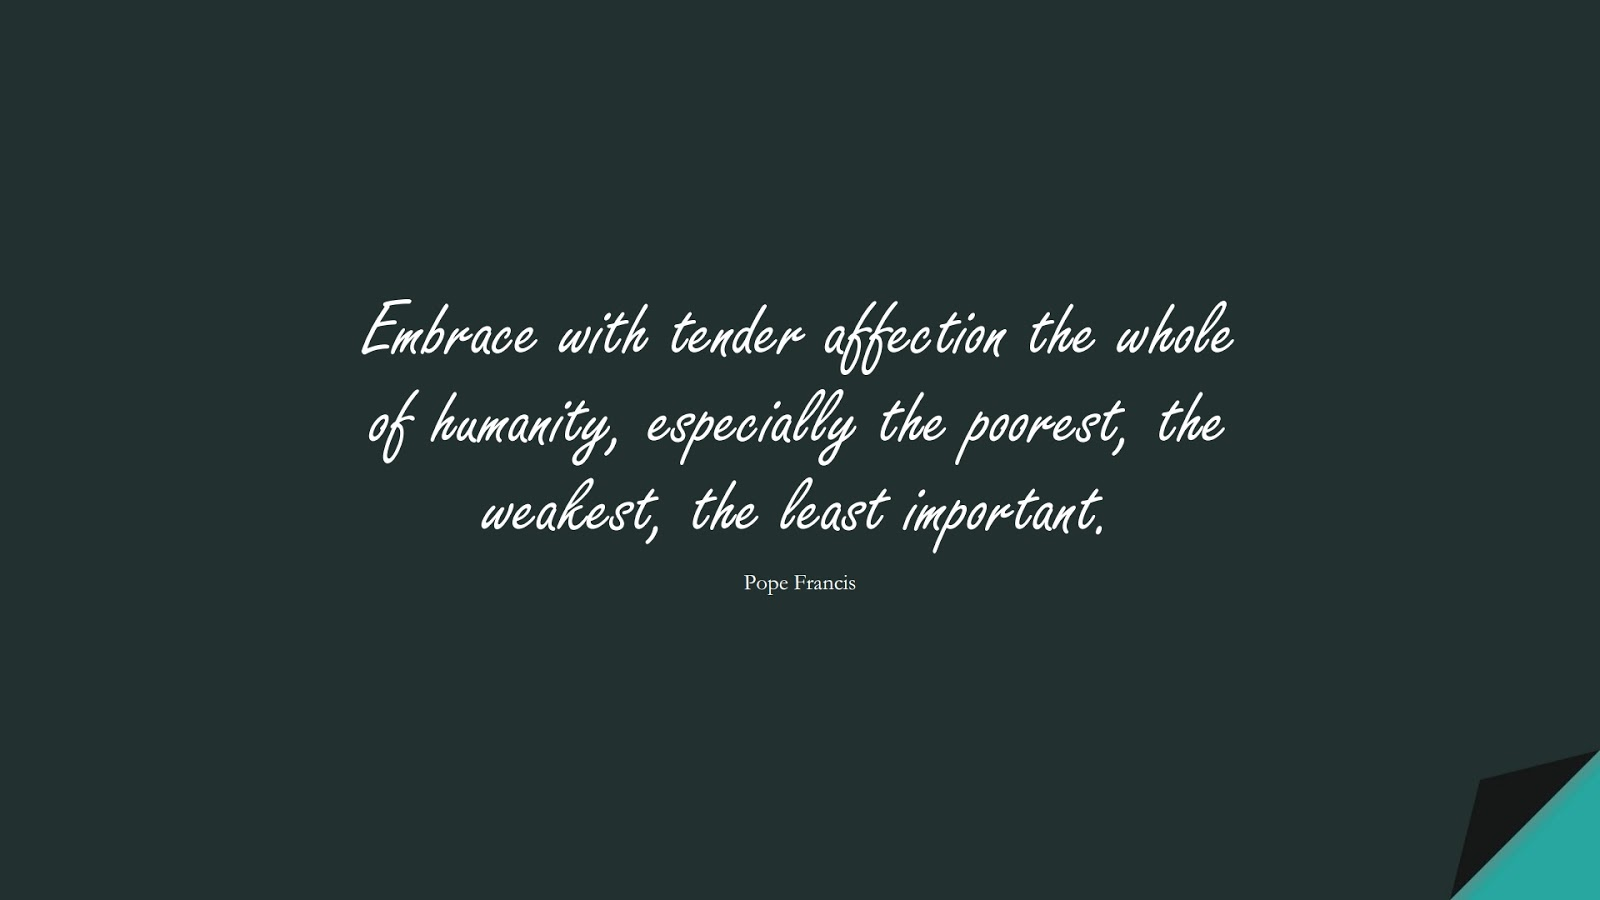 Embrace with tender affection the whole of humanity, especially the poorest, the weakest, the least important. (Pope Francis);  #HumanityQuotes